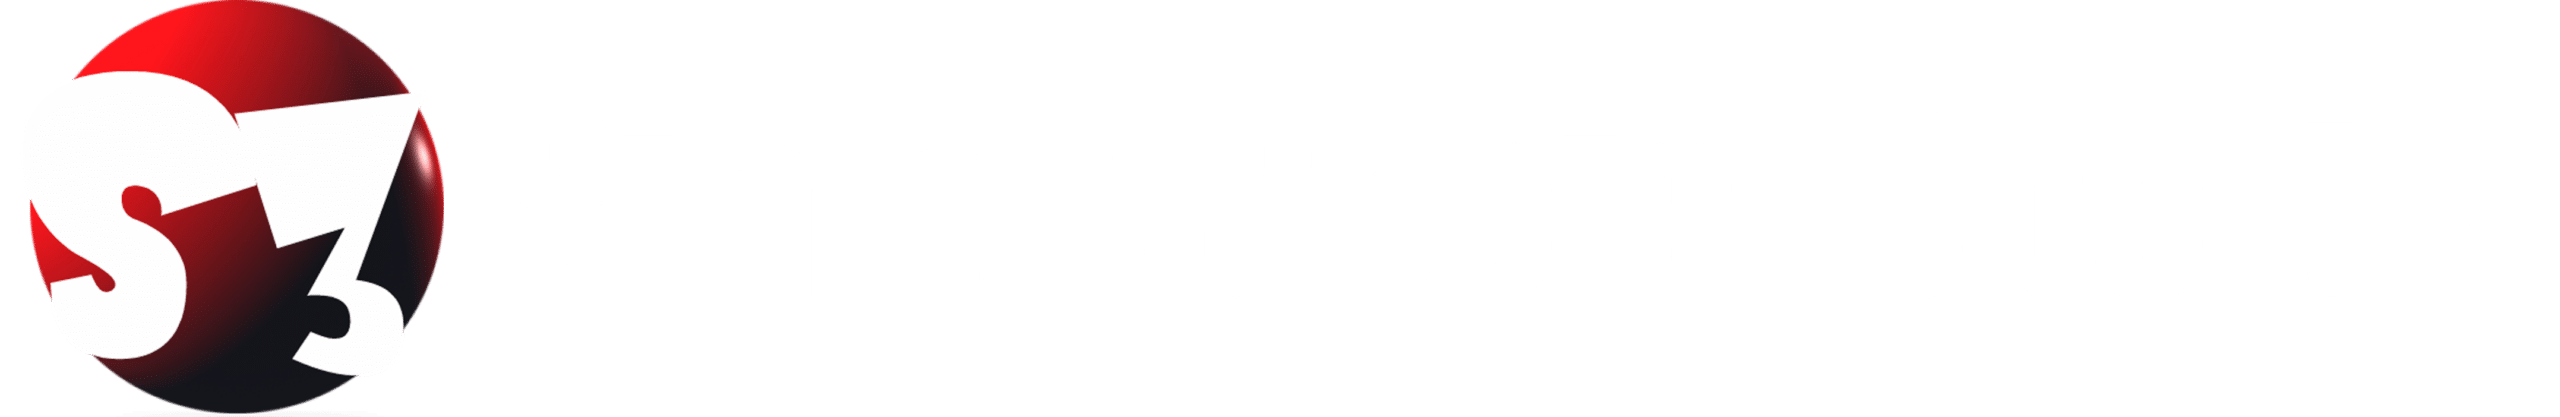 S3 Simply Social Sports Leagues Chicago